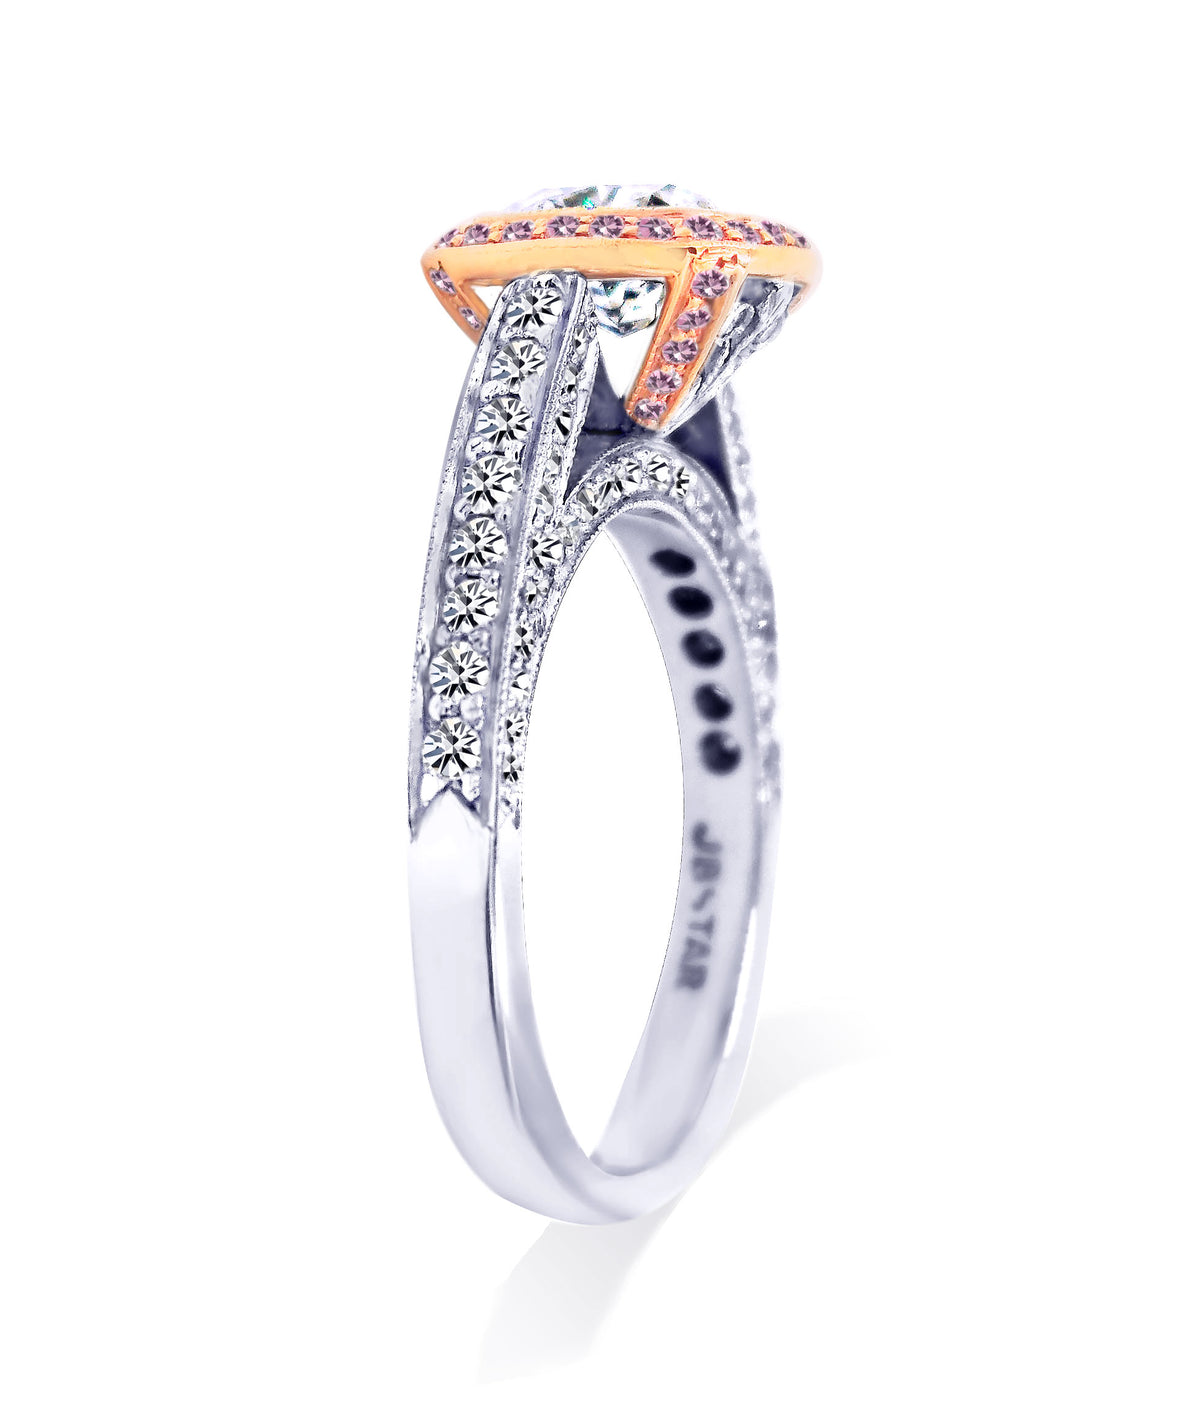 JB Star Platinum and Rose Gold Halo Cushion Cut Diamond Ring